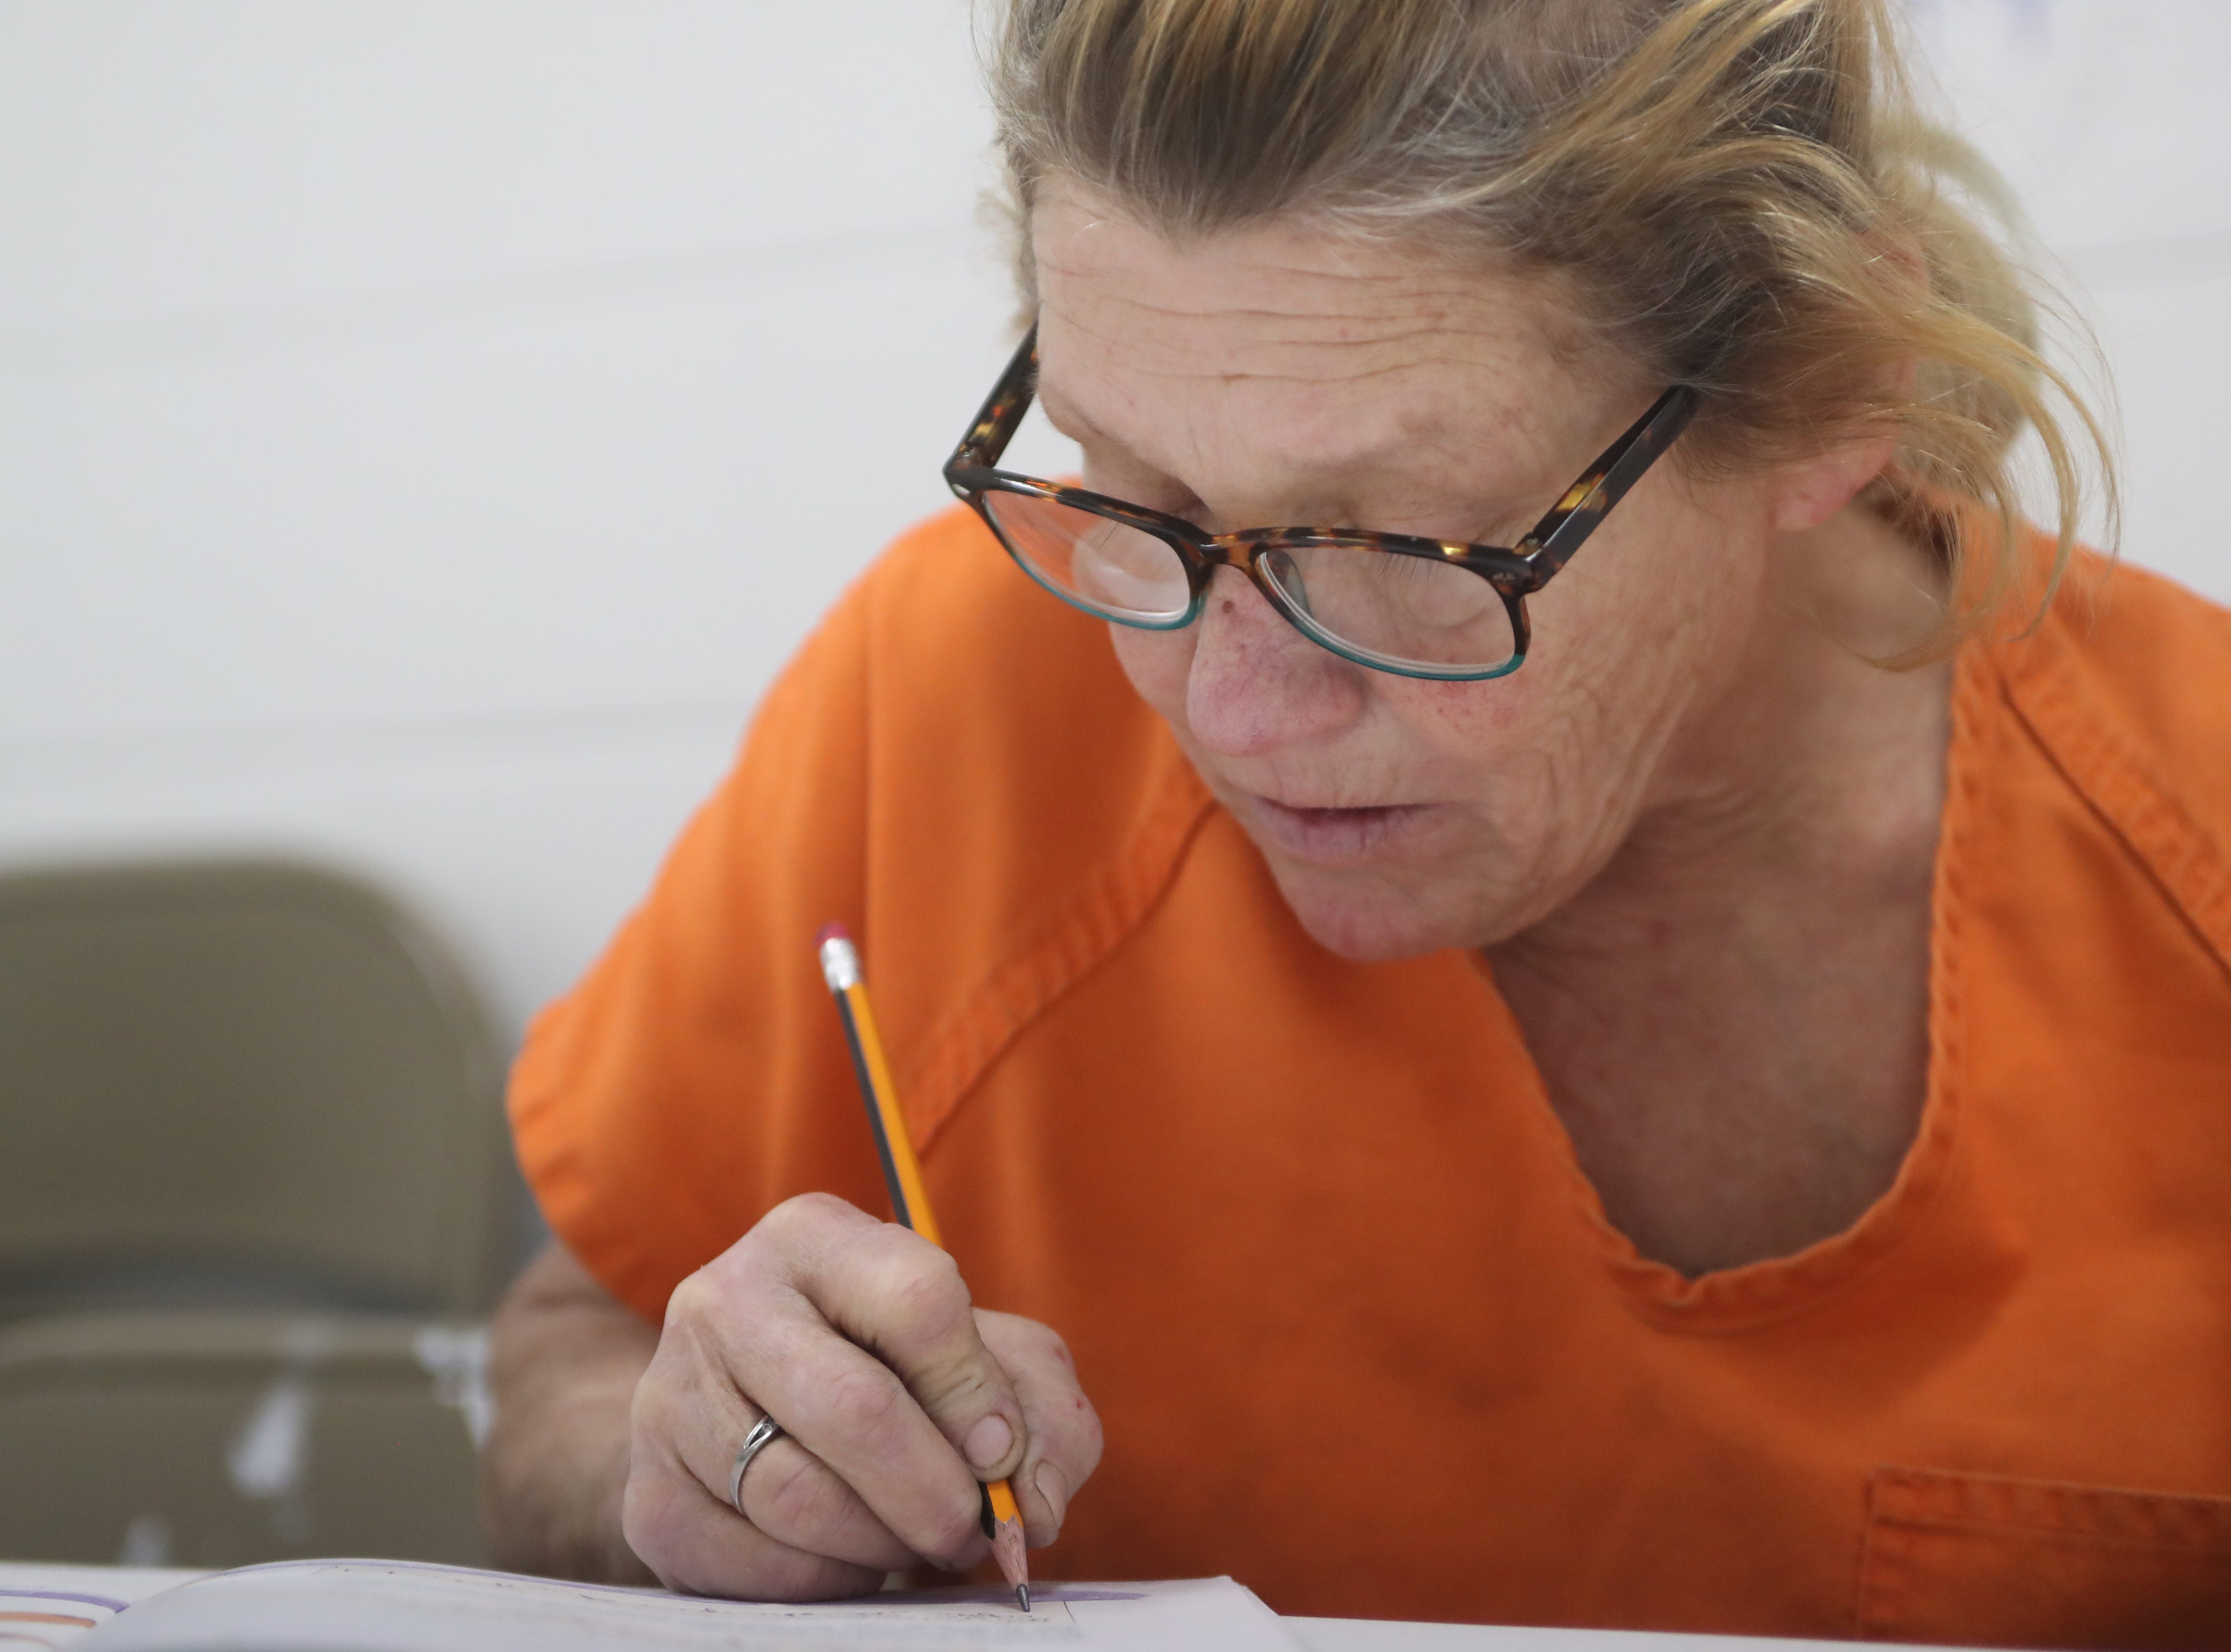 Donna Needer, an inmate at the Franklin County Jail, shares her experiences during a substance abuse counseling class by DISC Village at the jail in Eastpoint, Fla. Thursday, Oct. 27, 2018.